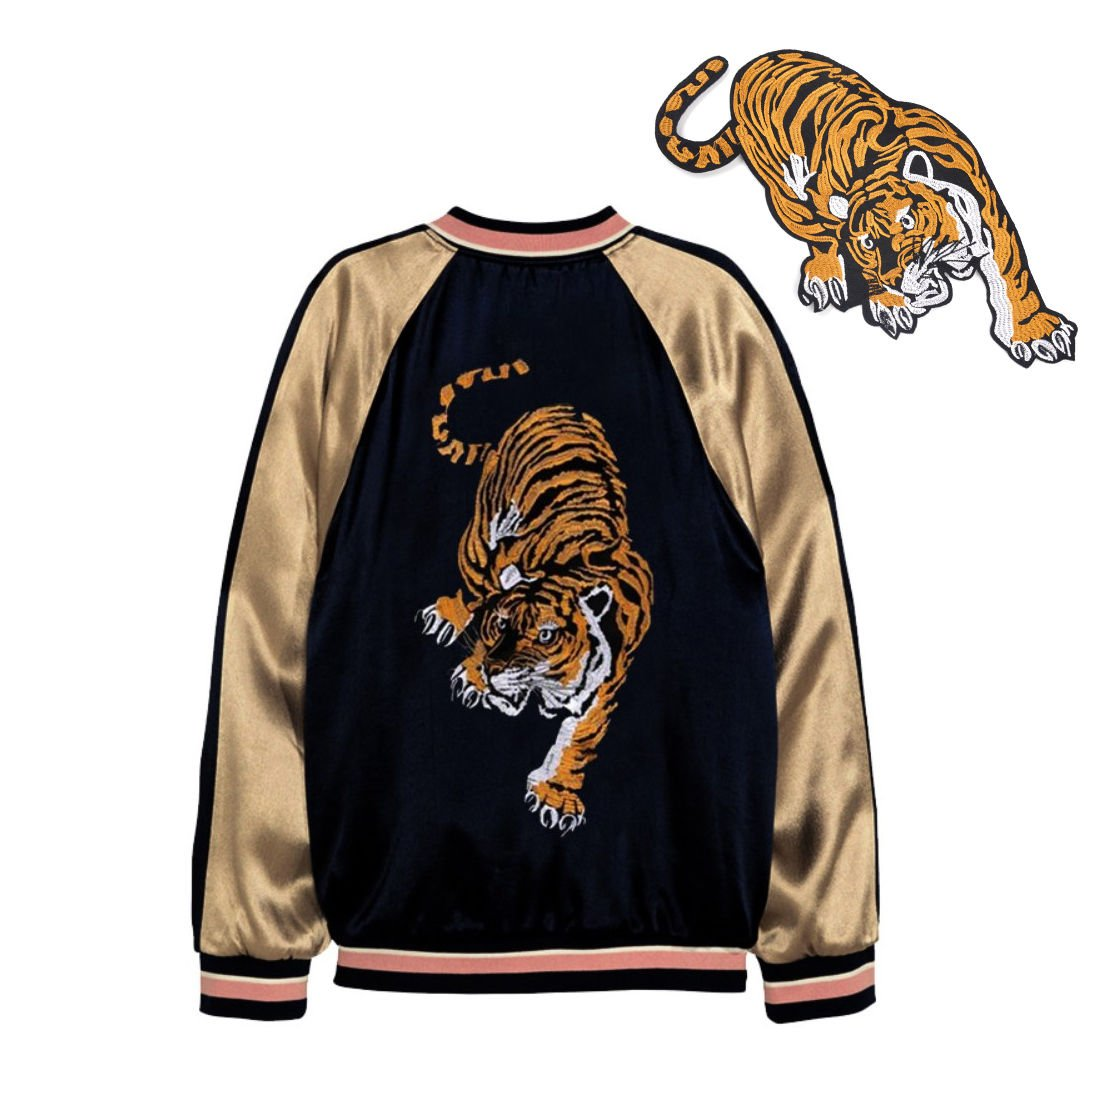 f50ae1543db Amazon.com  TheFound Tiger Patch for Clothes Applique Craft DIY Accessories  (Tiger Down the mountain)  Clothing